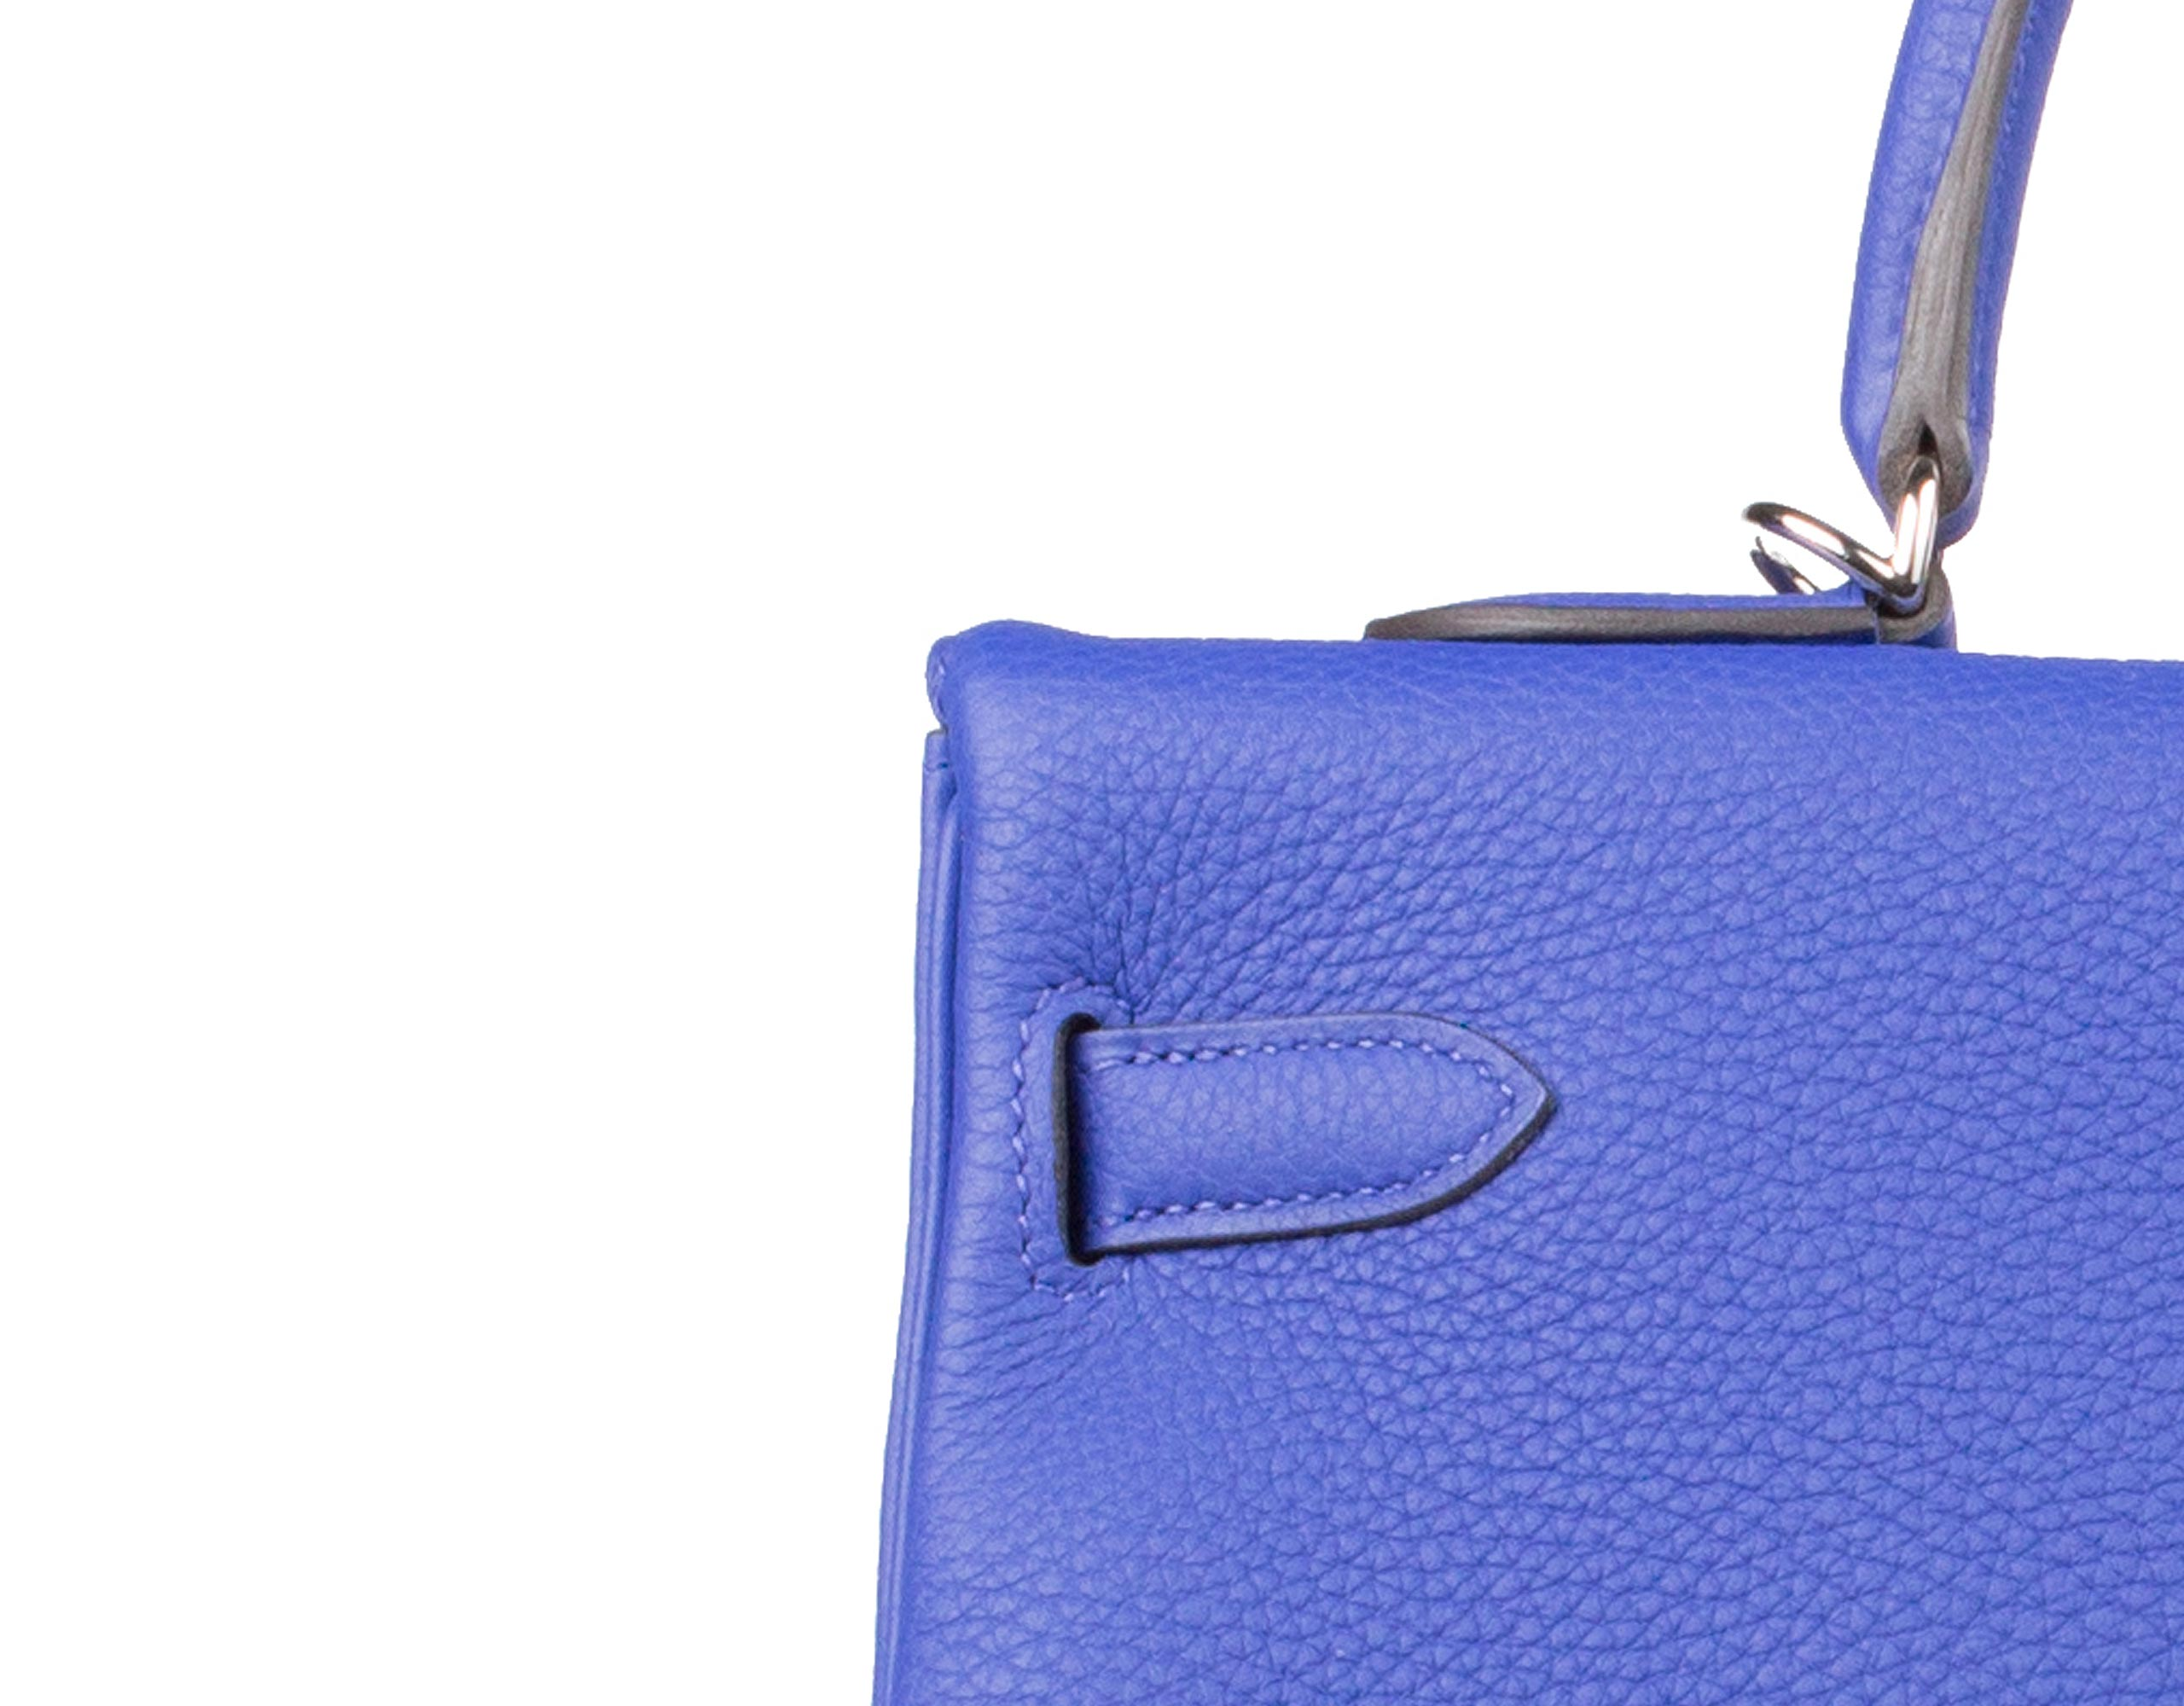 Hermes Bag Kelly Blue Electric Togo 35cm K73 Stitching